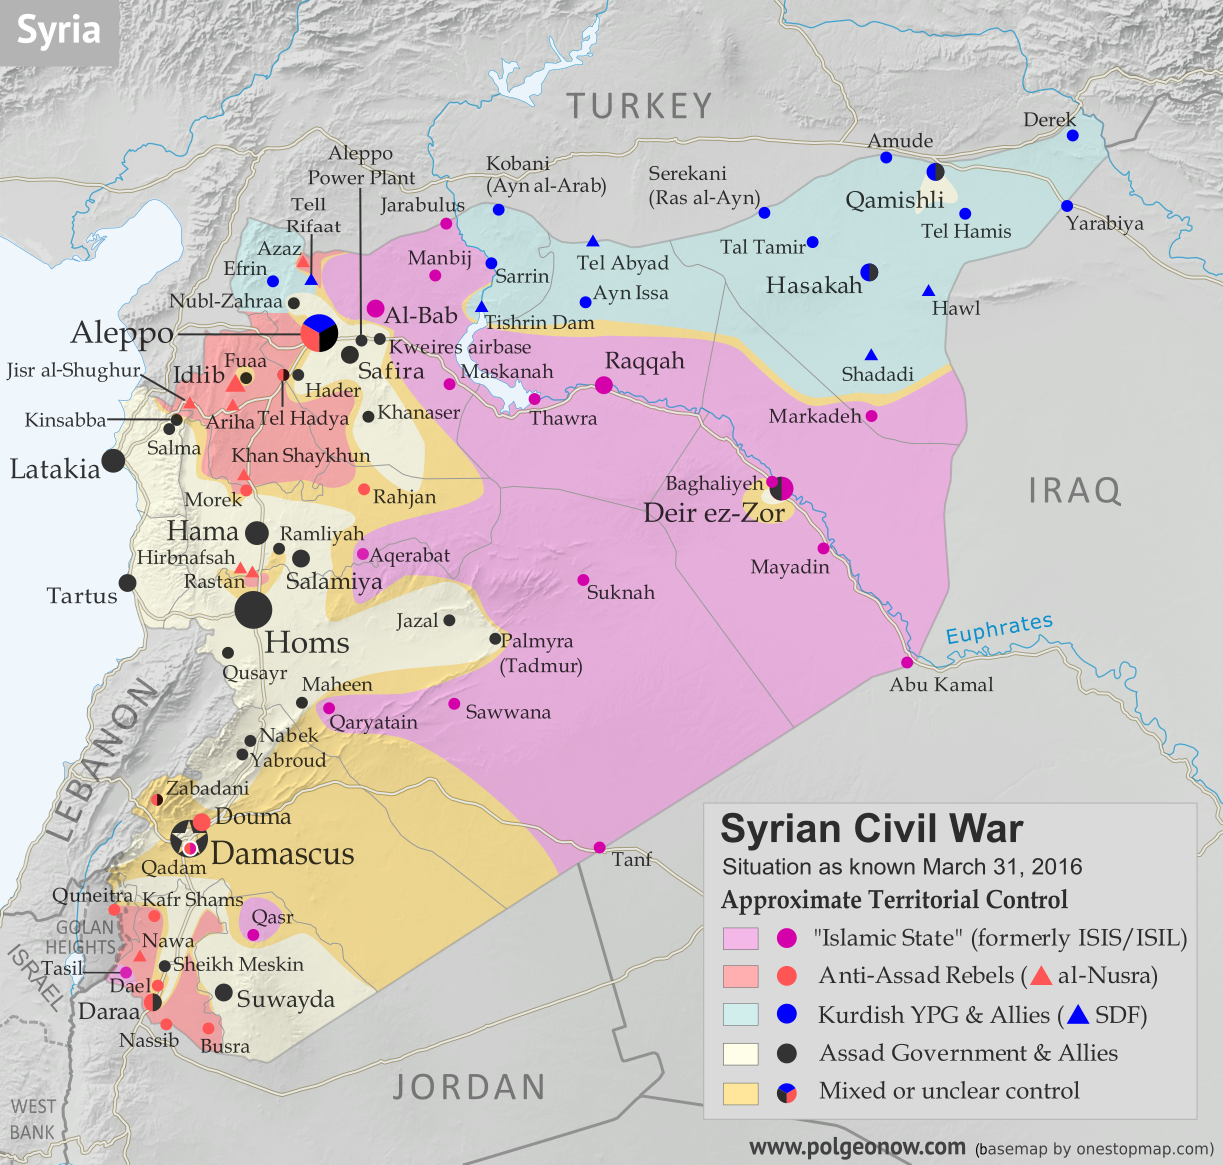 Map of fighting and territorial control in Syria's Civil War (Free Syrian Army rebels, Kurdish YPG, Syrian Democratic Forces (SDF), Al-Nusra Front, Islamic State (ISIS/ISIL), and others), updated for the beginning of April 2016. Now includes terrain and major roads (highways). Highlights recent locations of conflict and territorial control changes, including Palmyra, Qaryatayn, Deir Ez-Zor, and more. (Color blind accessible.)